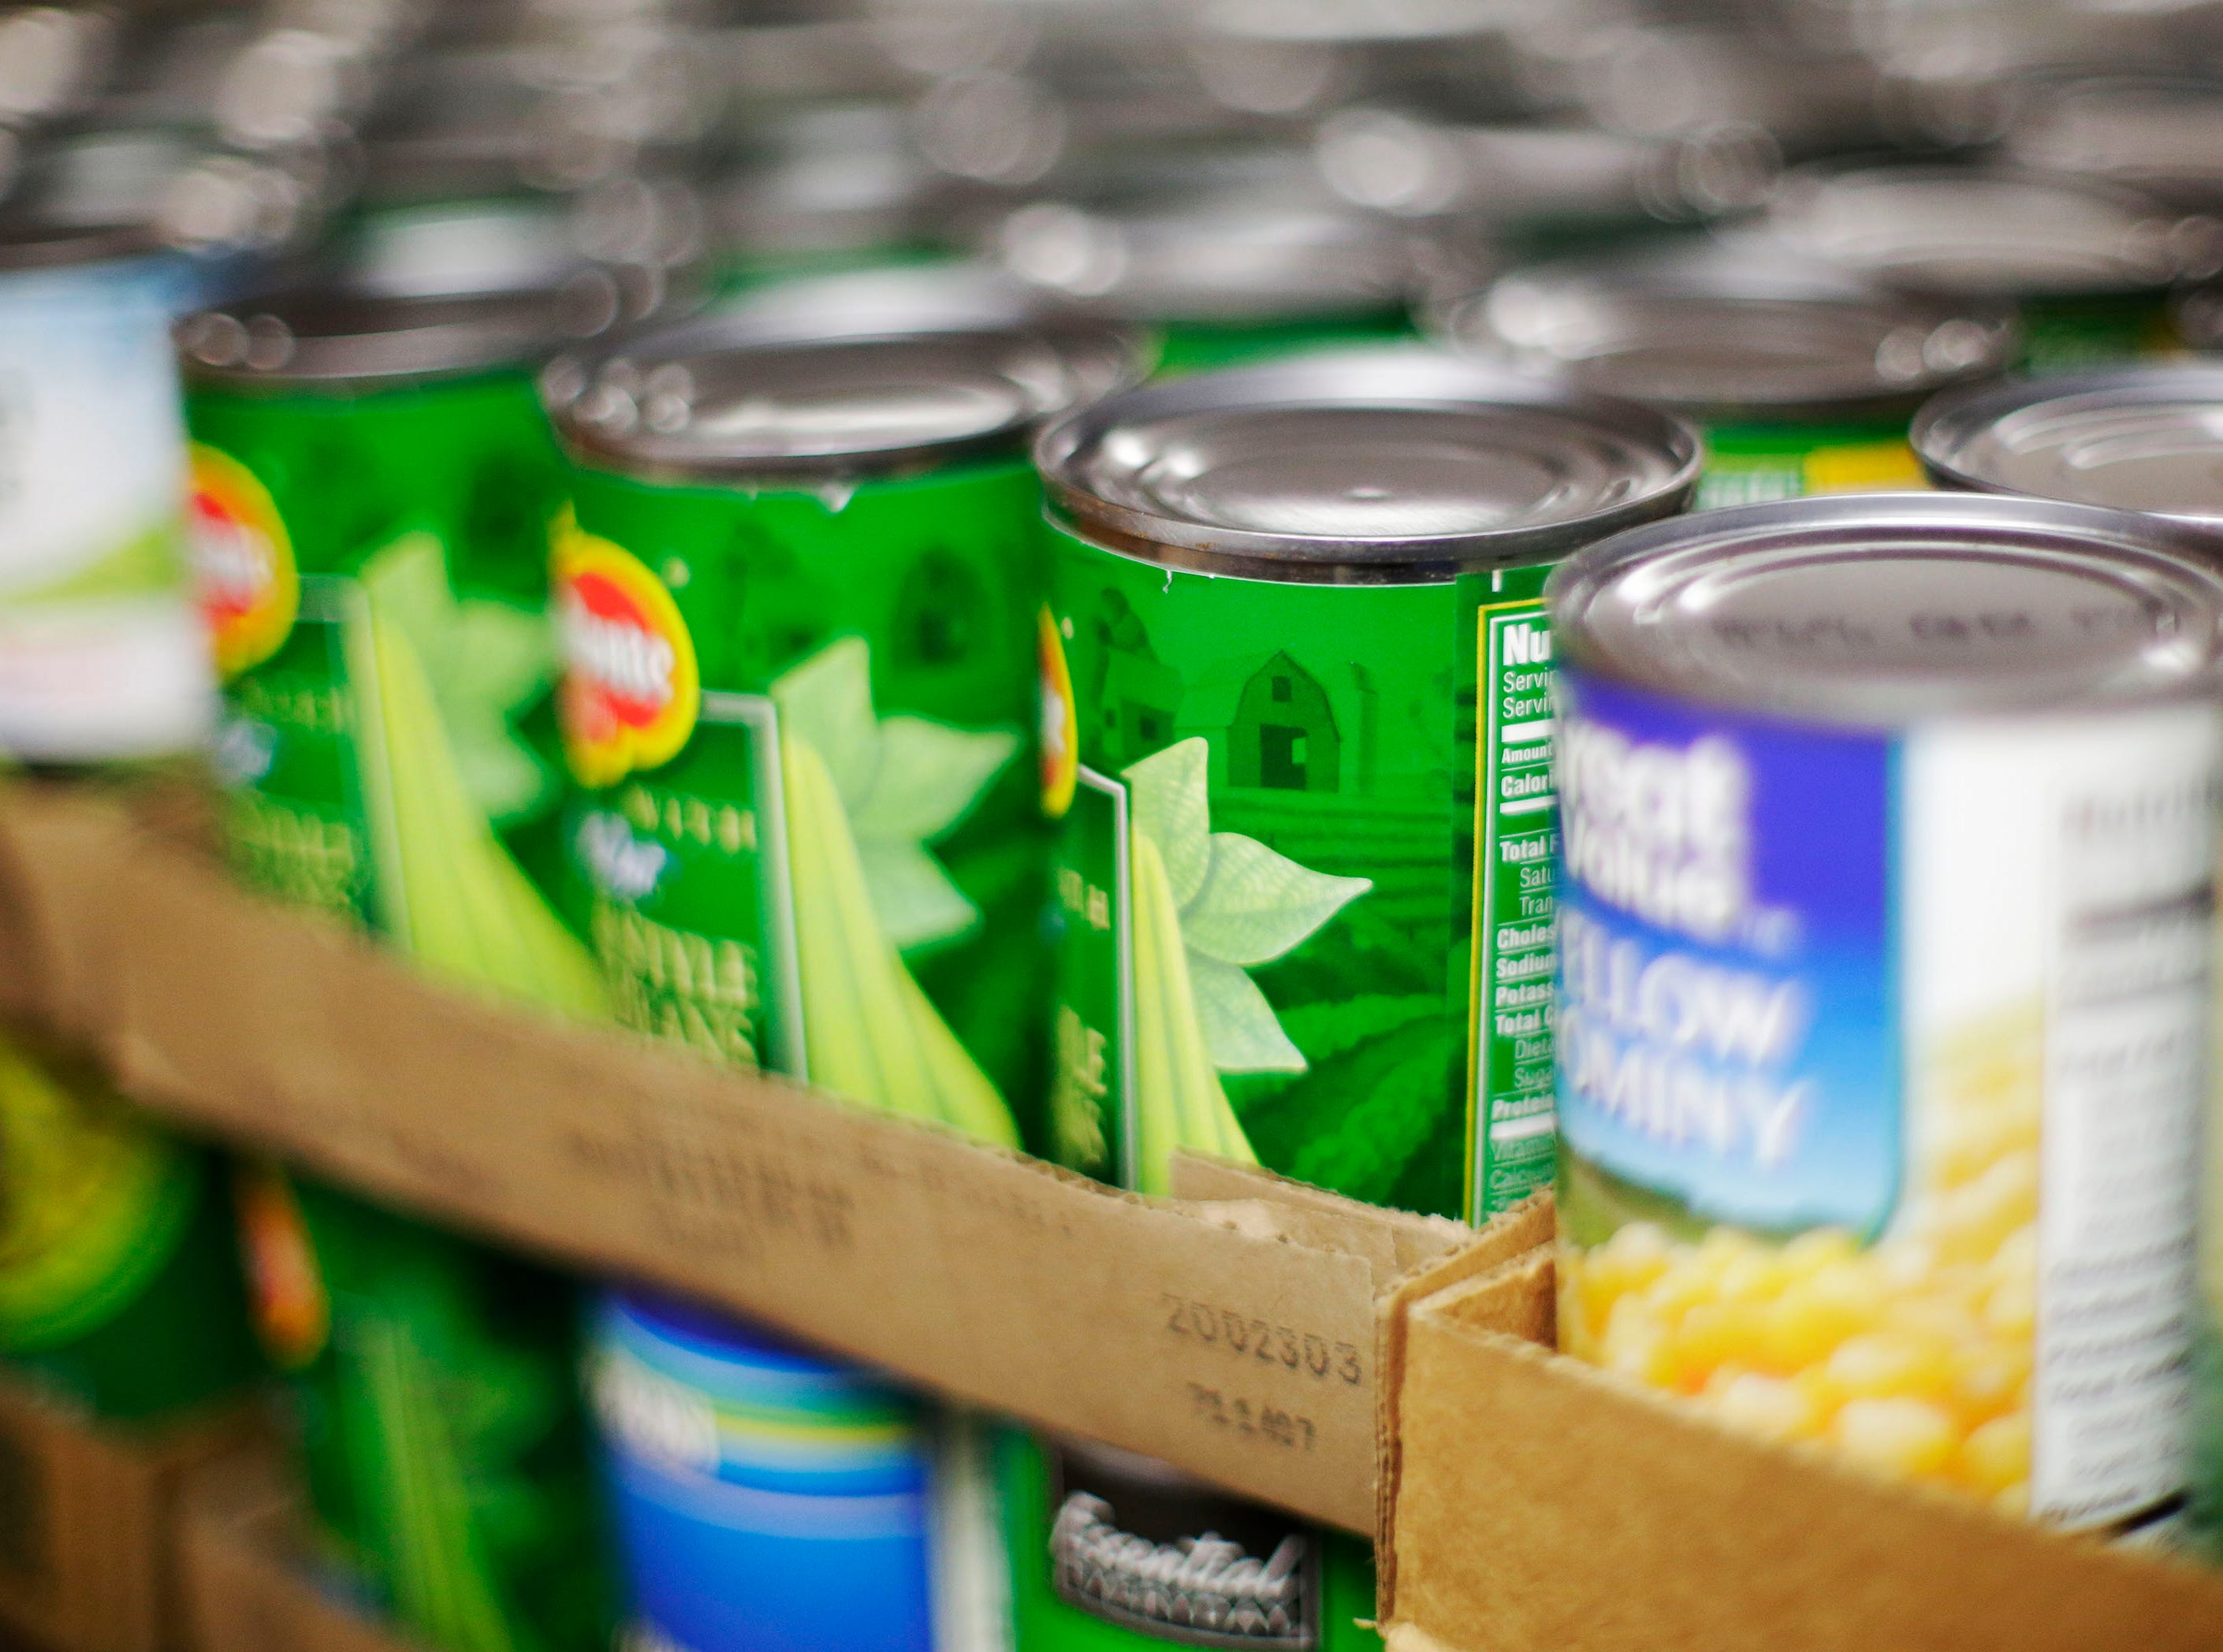 Sheboygan Salvation Army food pantry canned goods as seen Sept. 20, 2018, in Sheboygan, Wis.